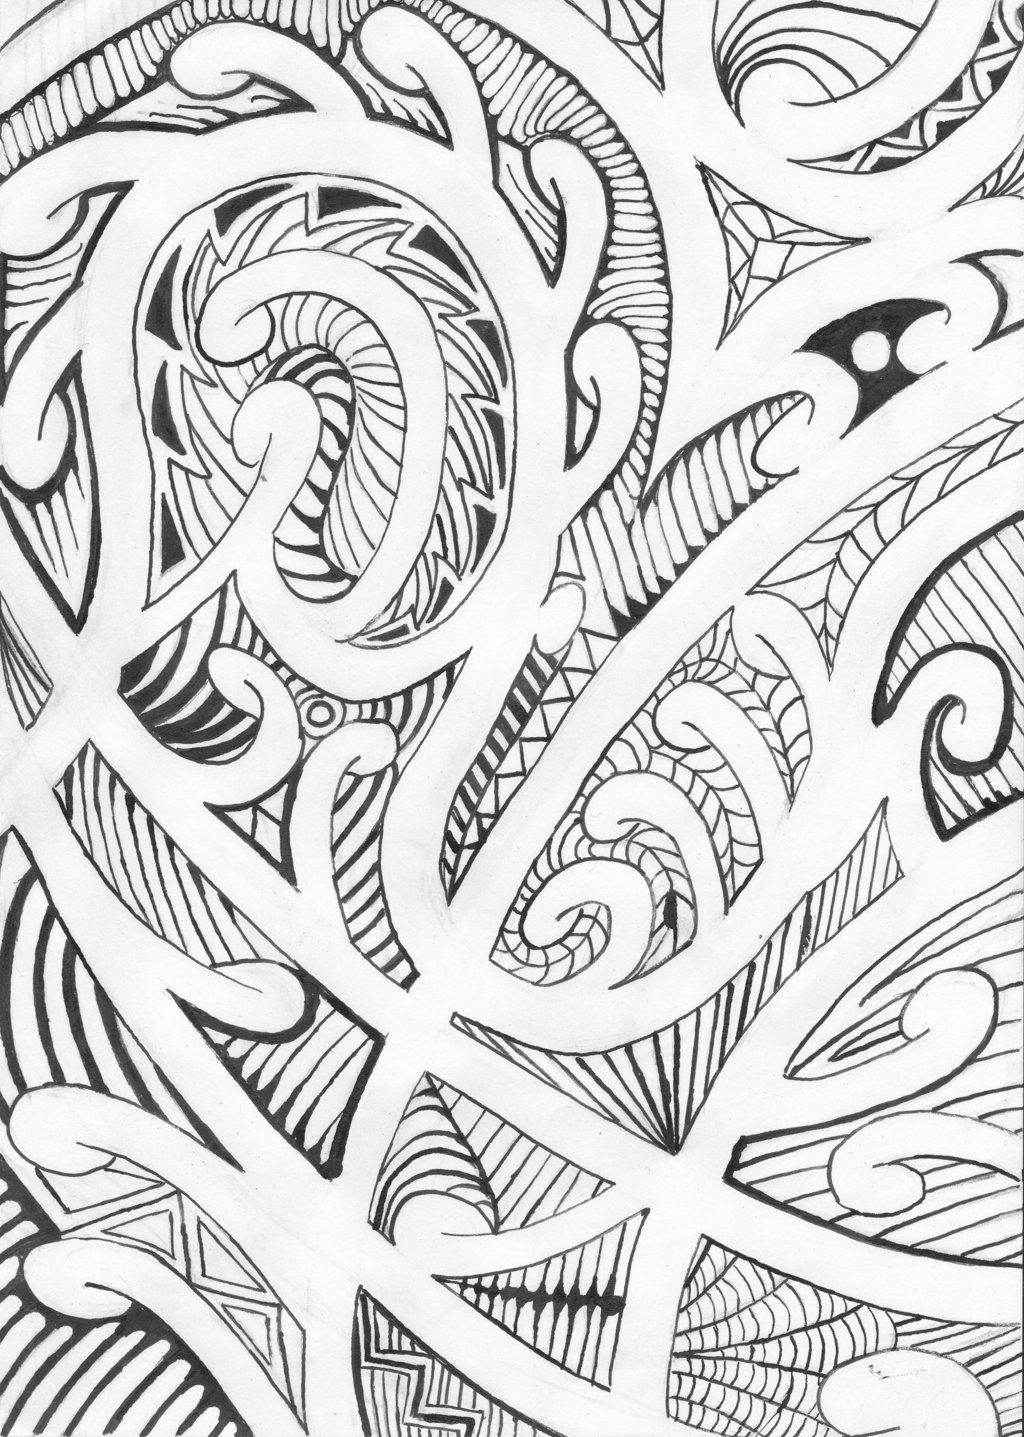 Art Designs Polynesian Patterns And Tattoos And Arts Patterns